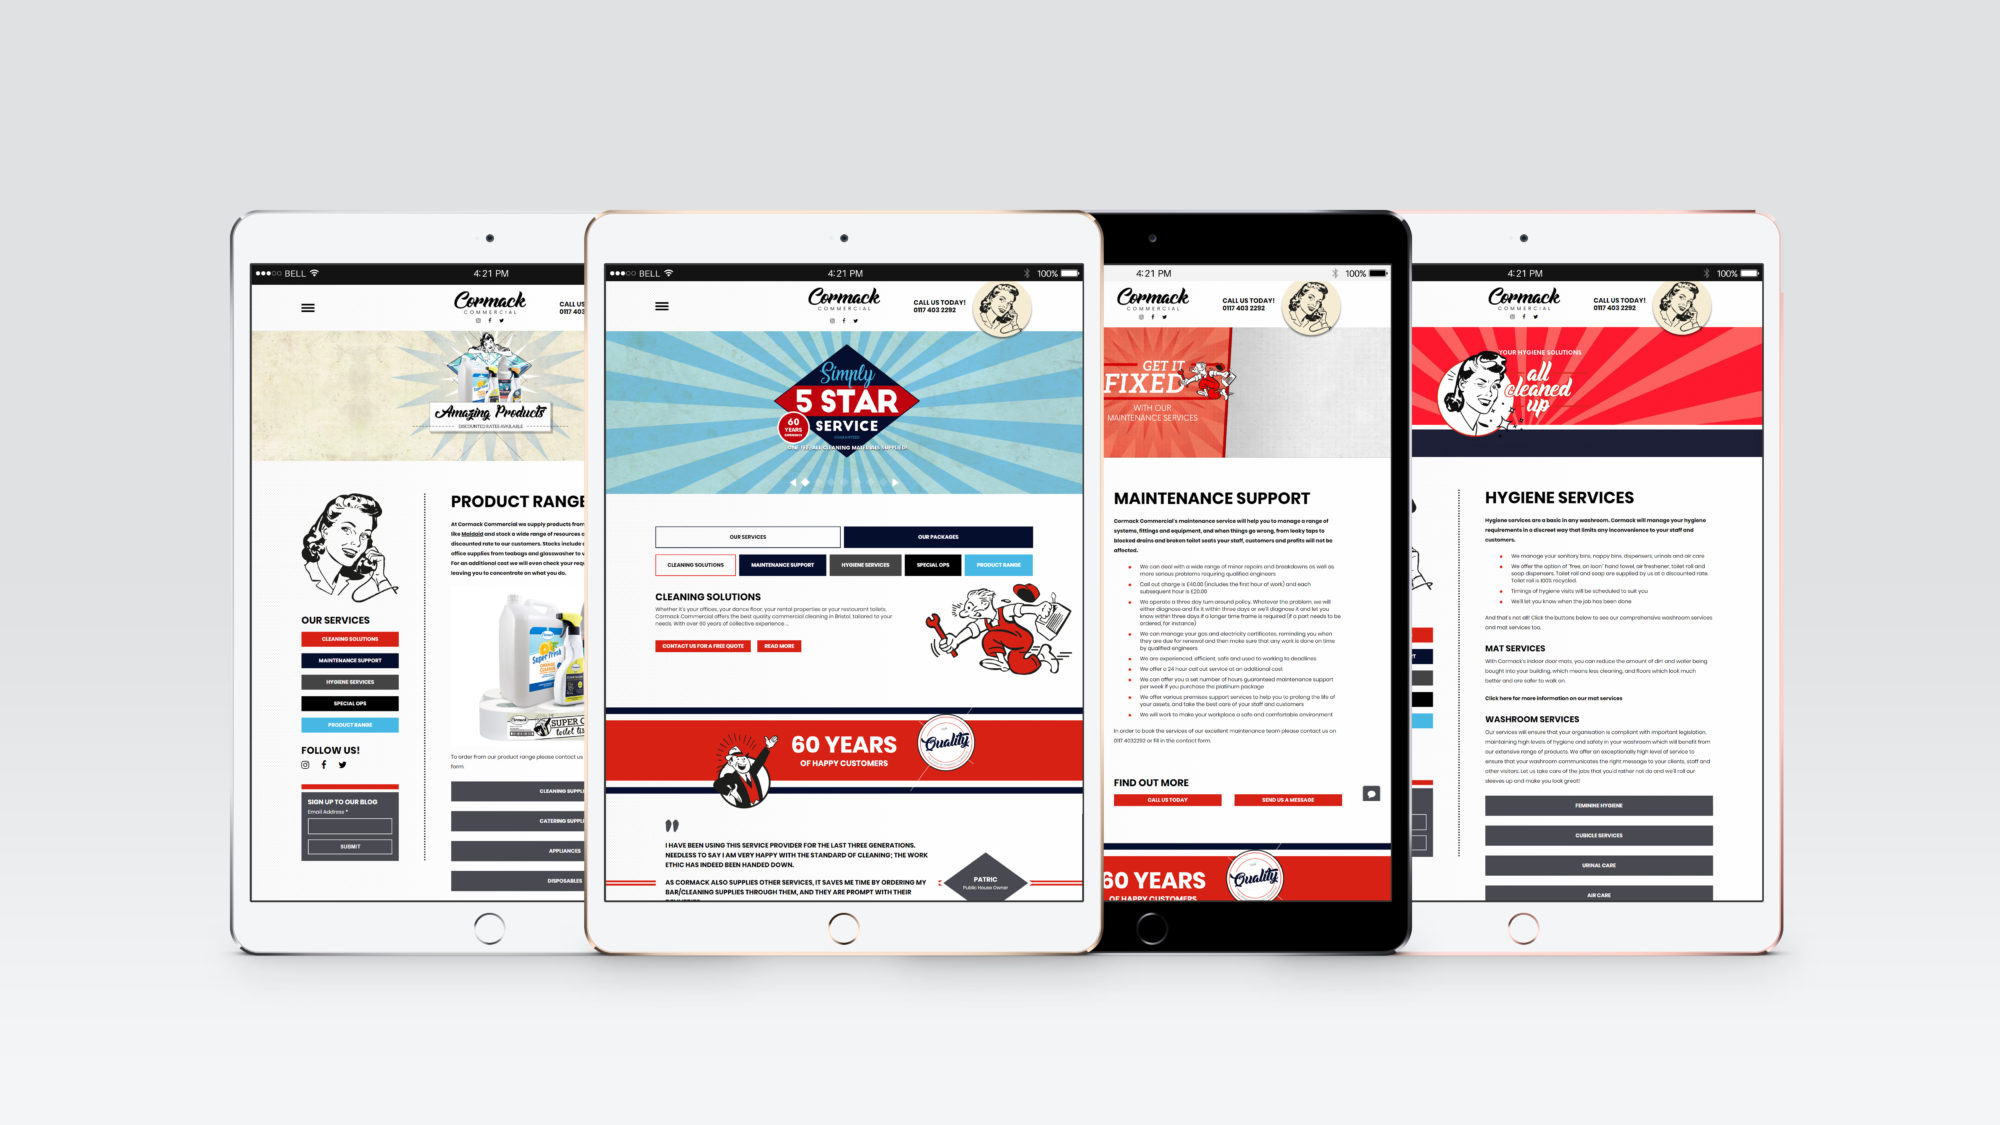 Cormack Ipad mockup - Cormack Commercial Cleaning Up